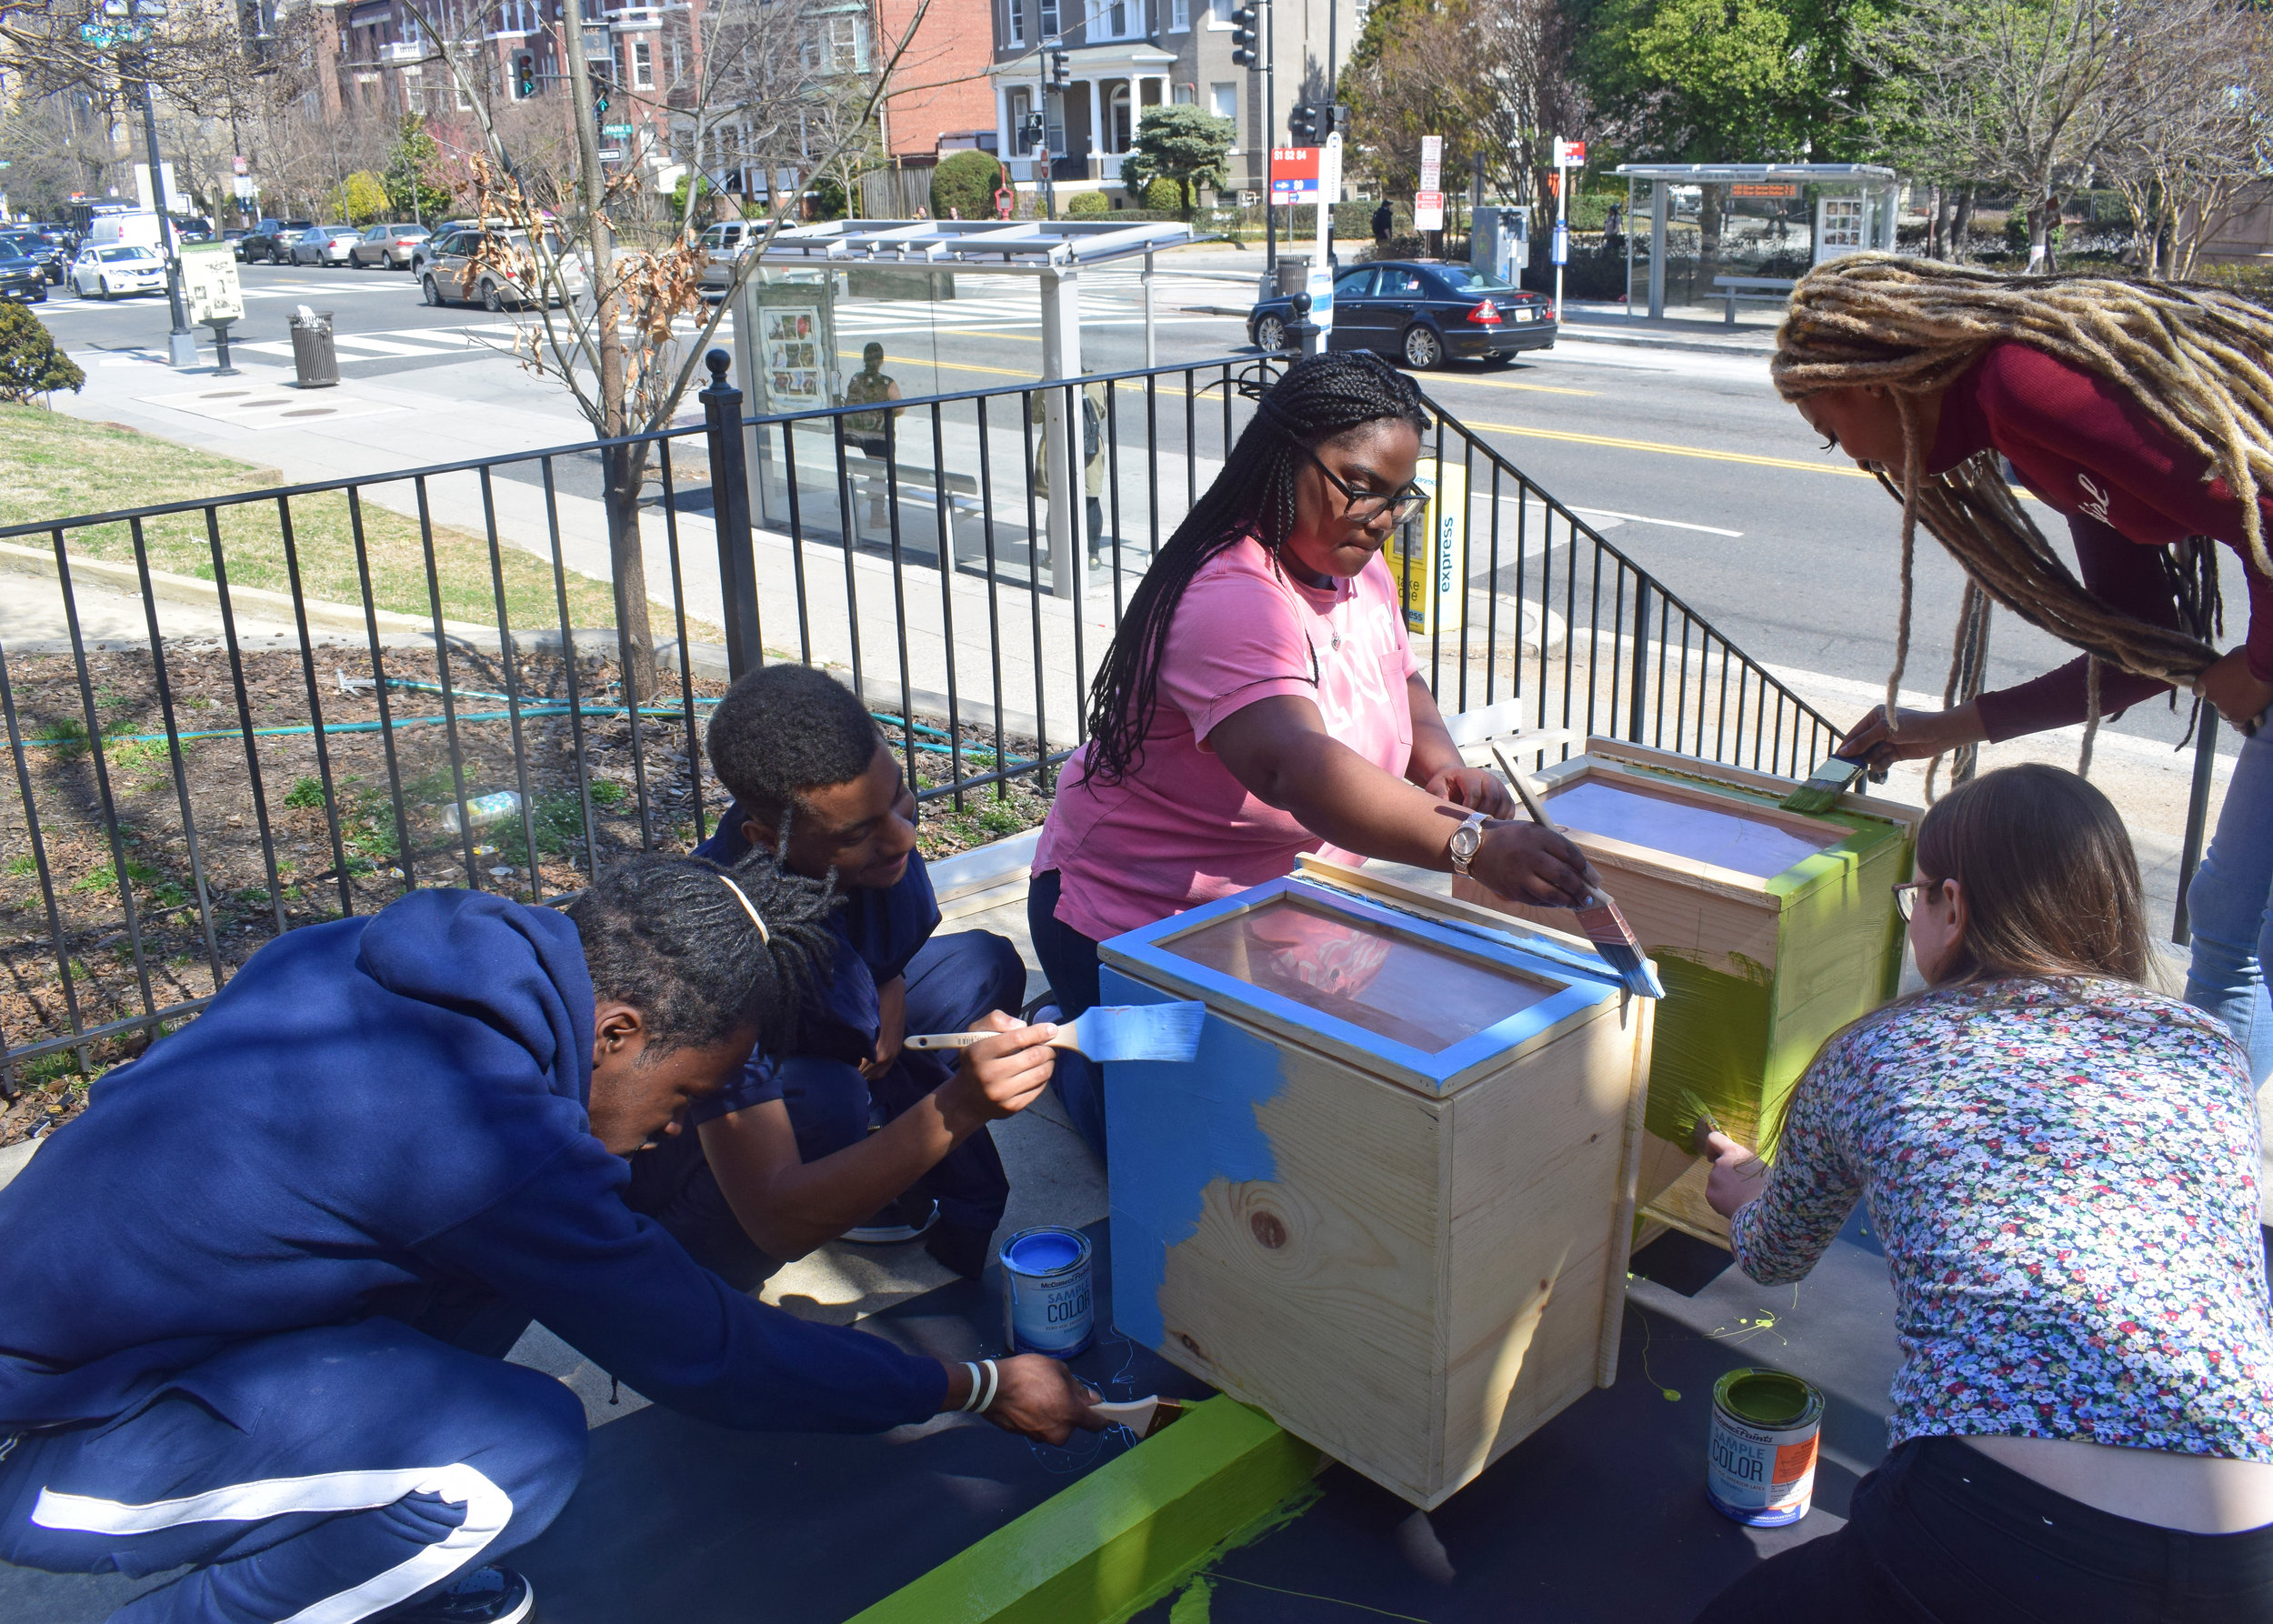 The Little Library Project - YBPCS celebrates AmeriCorps Week with promoting literacy throughout DC